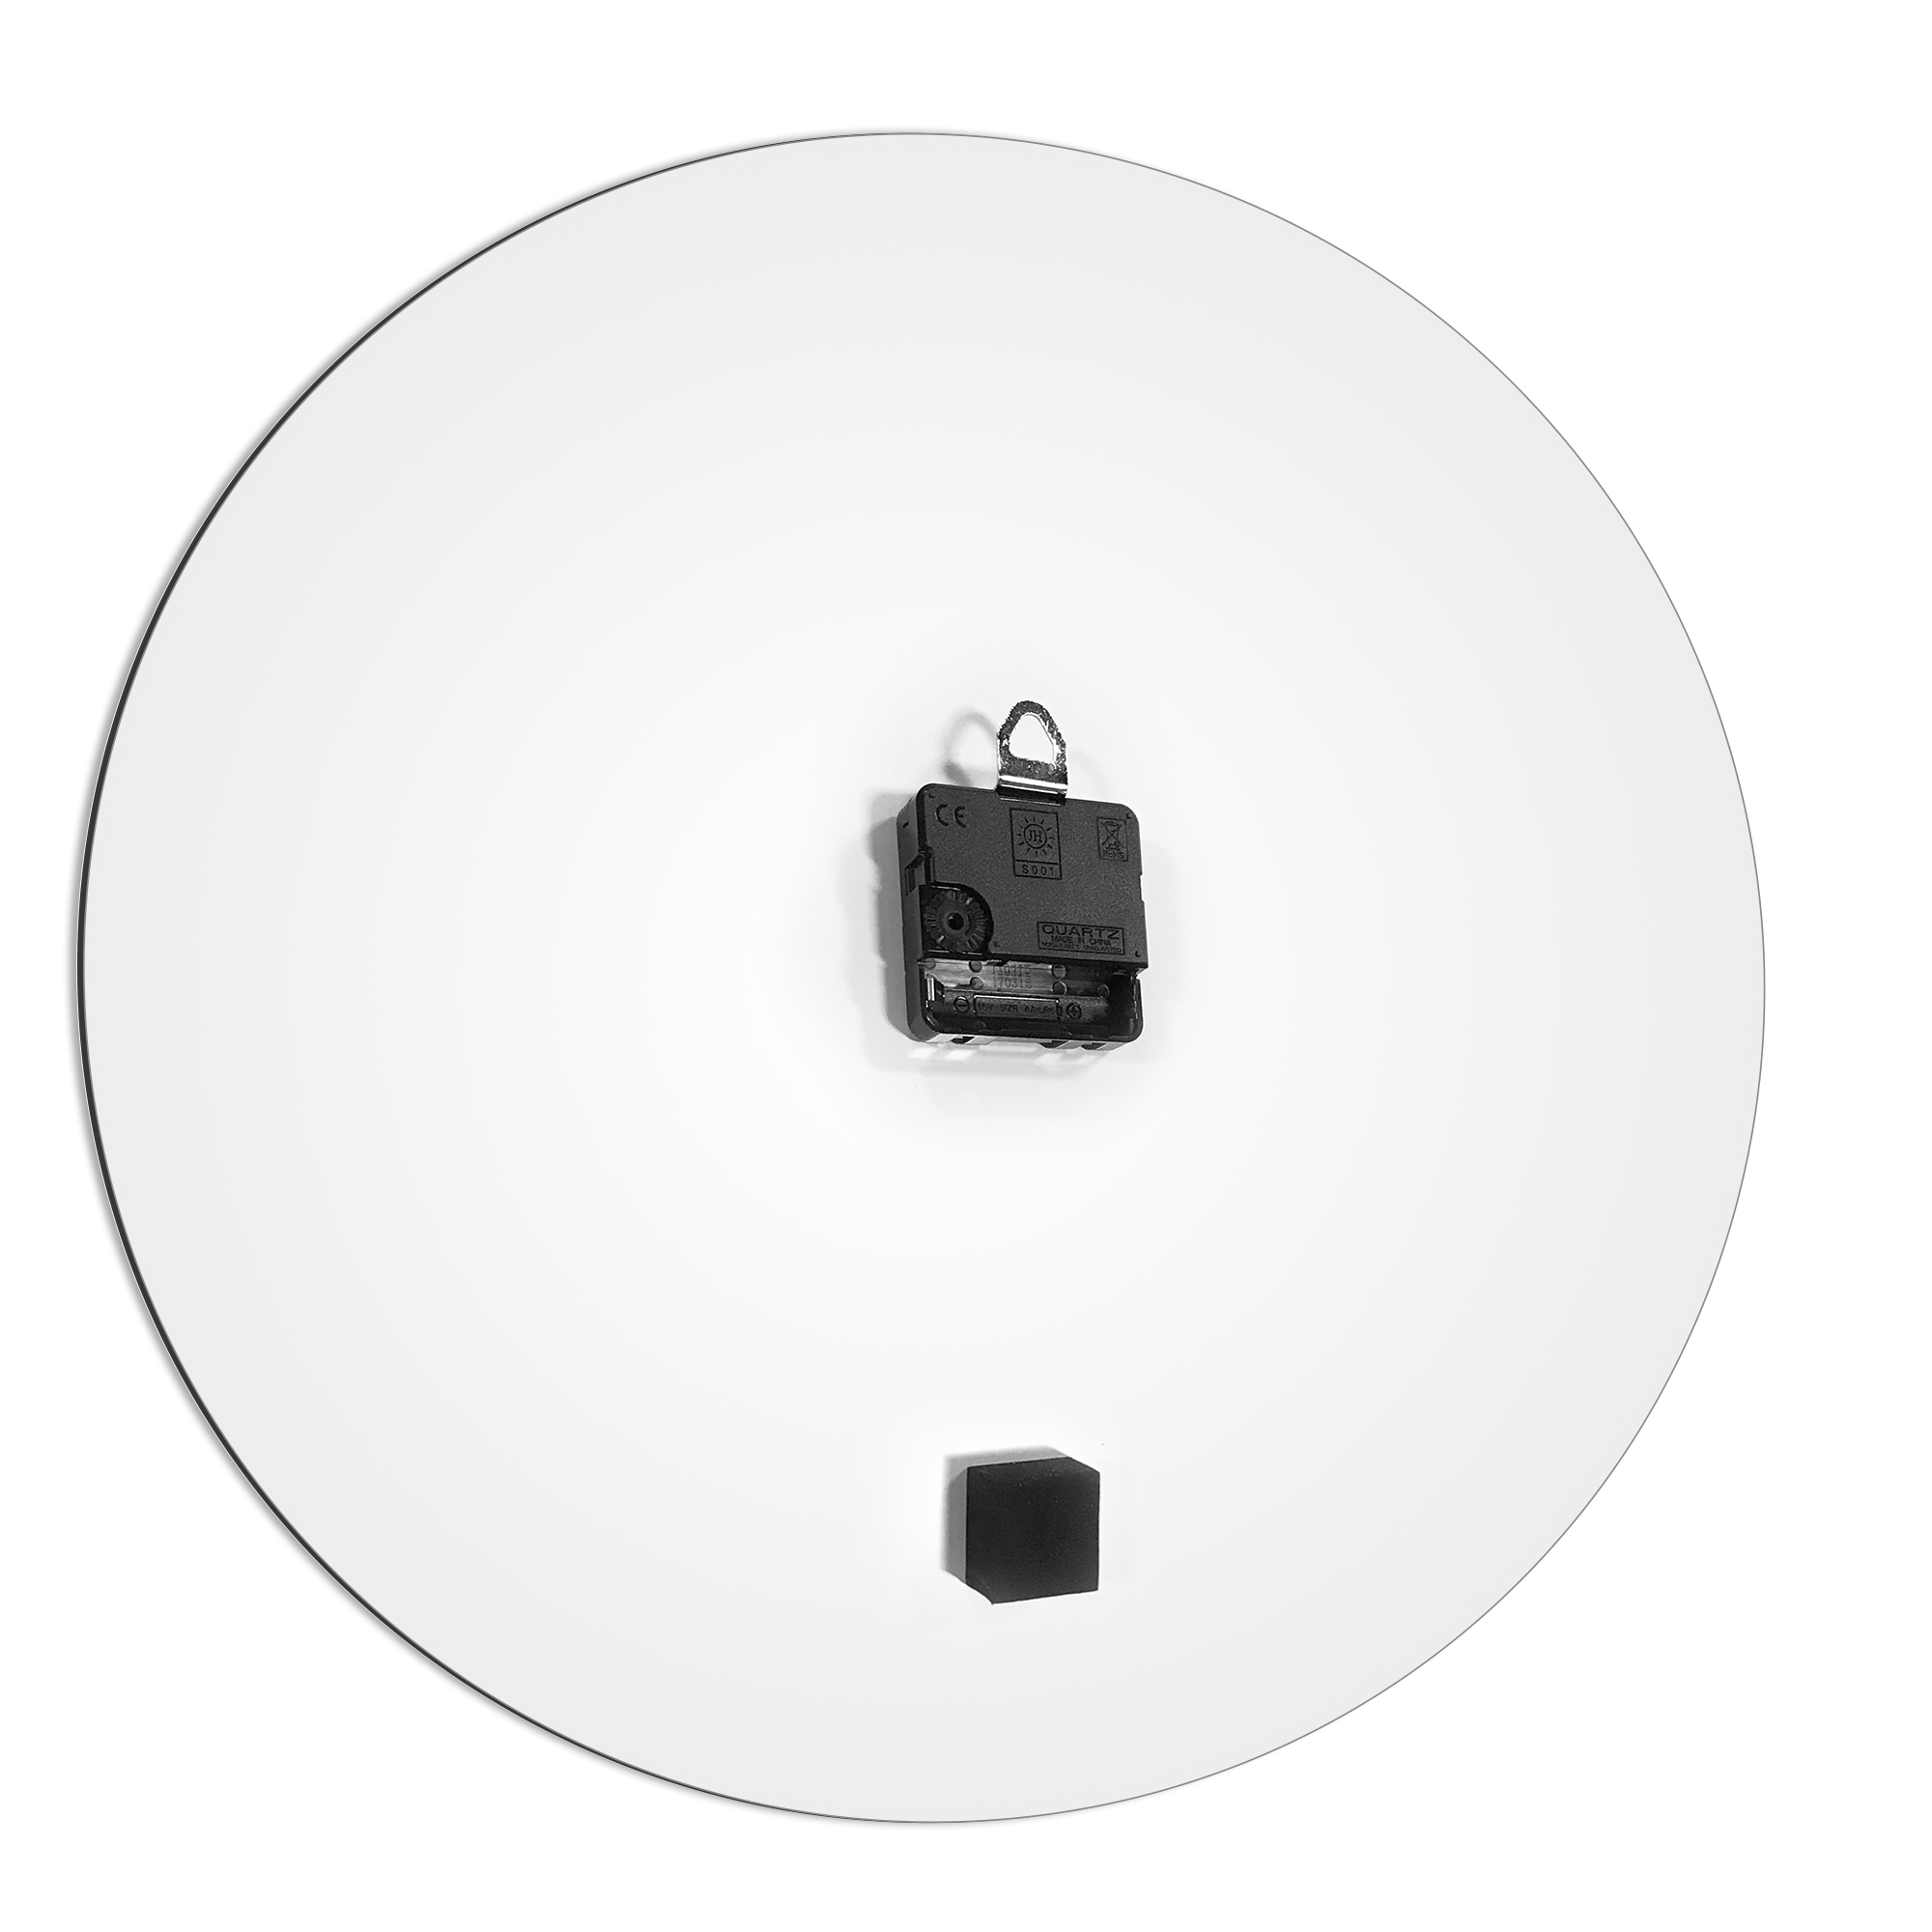 Greenout Black Circle Clock Large by Adam Schwoeppe Contemporary Clock on Aluminum Polymetal - Alternate View 3